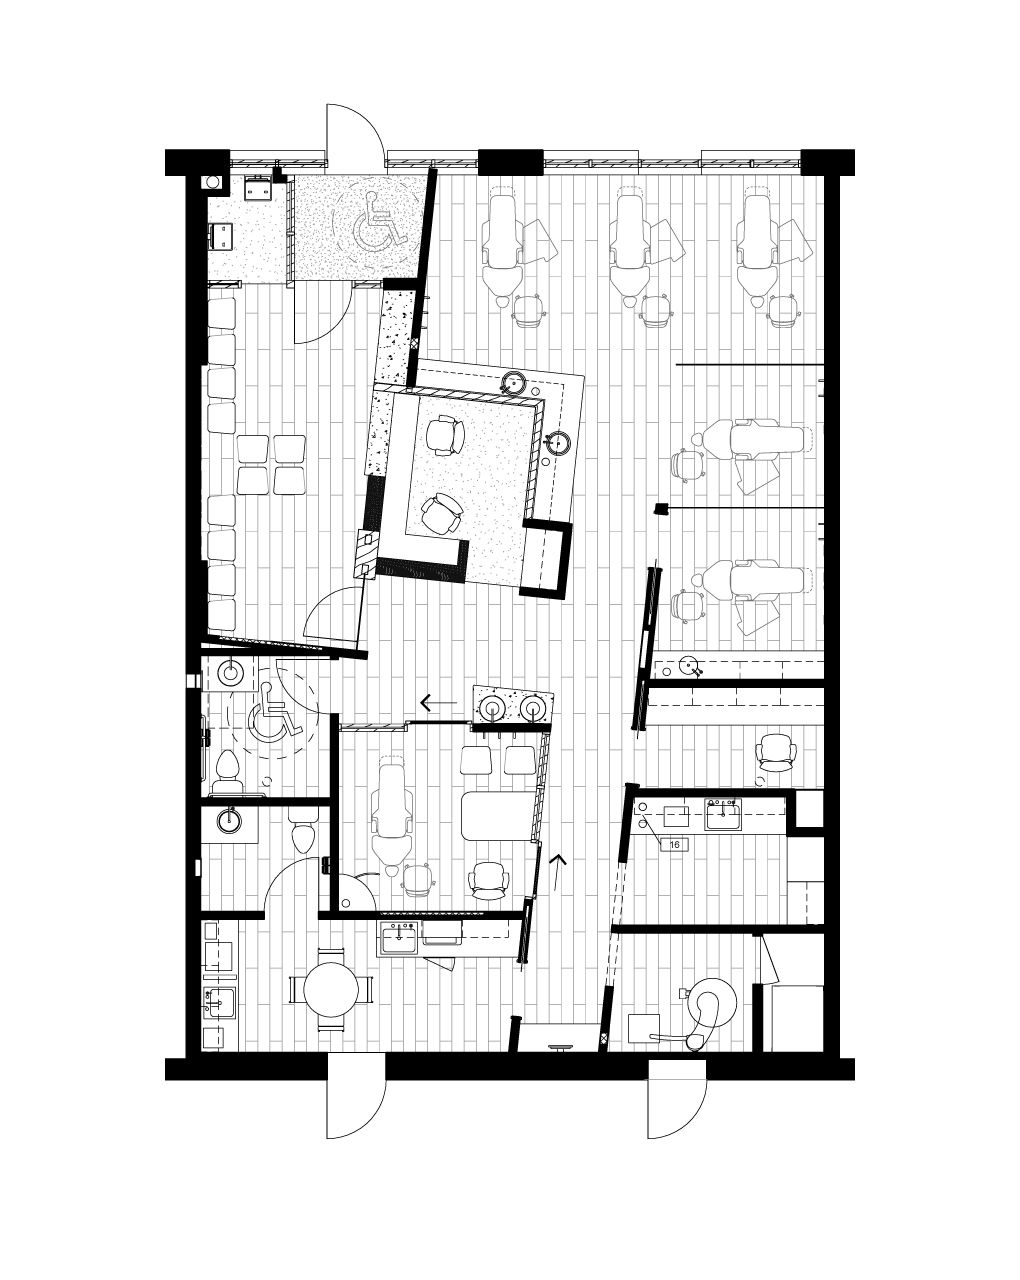 Tasios Orthodontics - Floor Plan